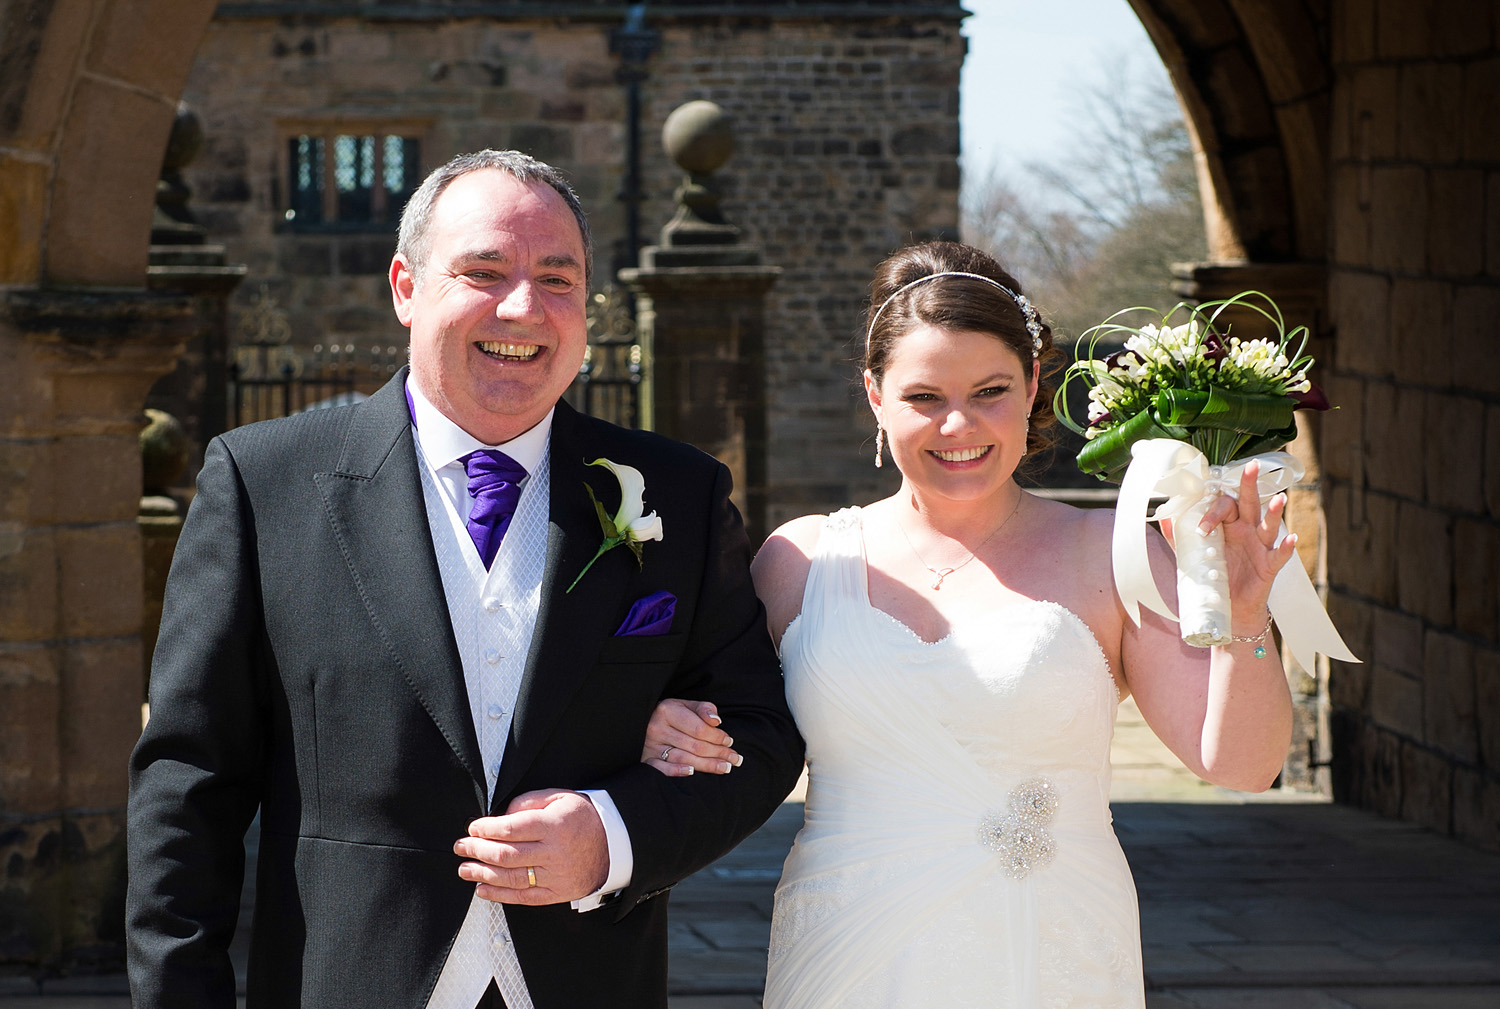 Wedding photograph at Hoghton Tower